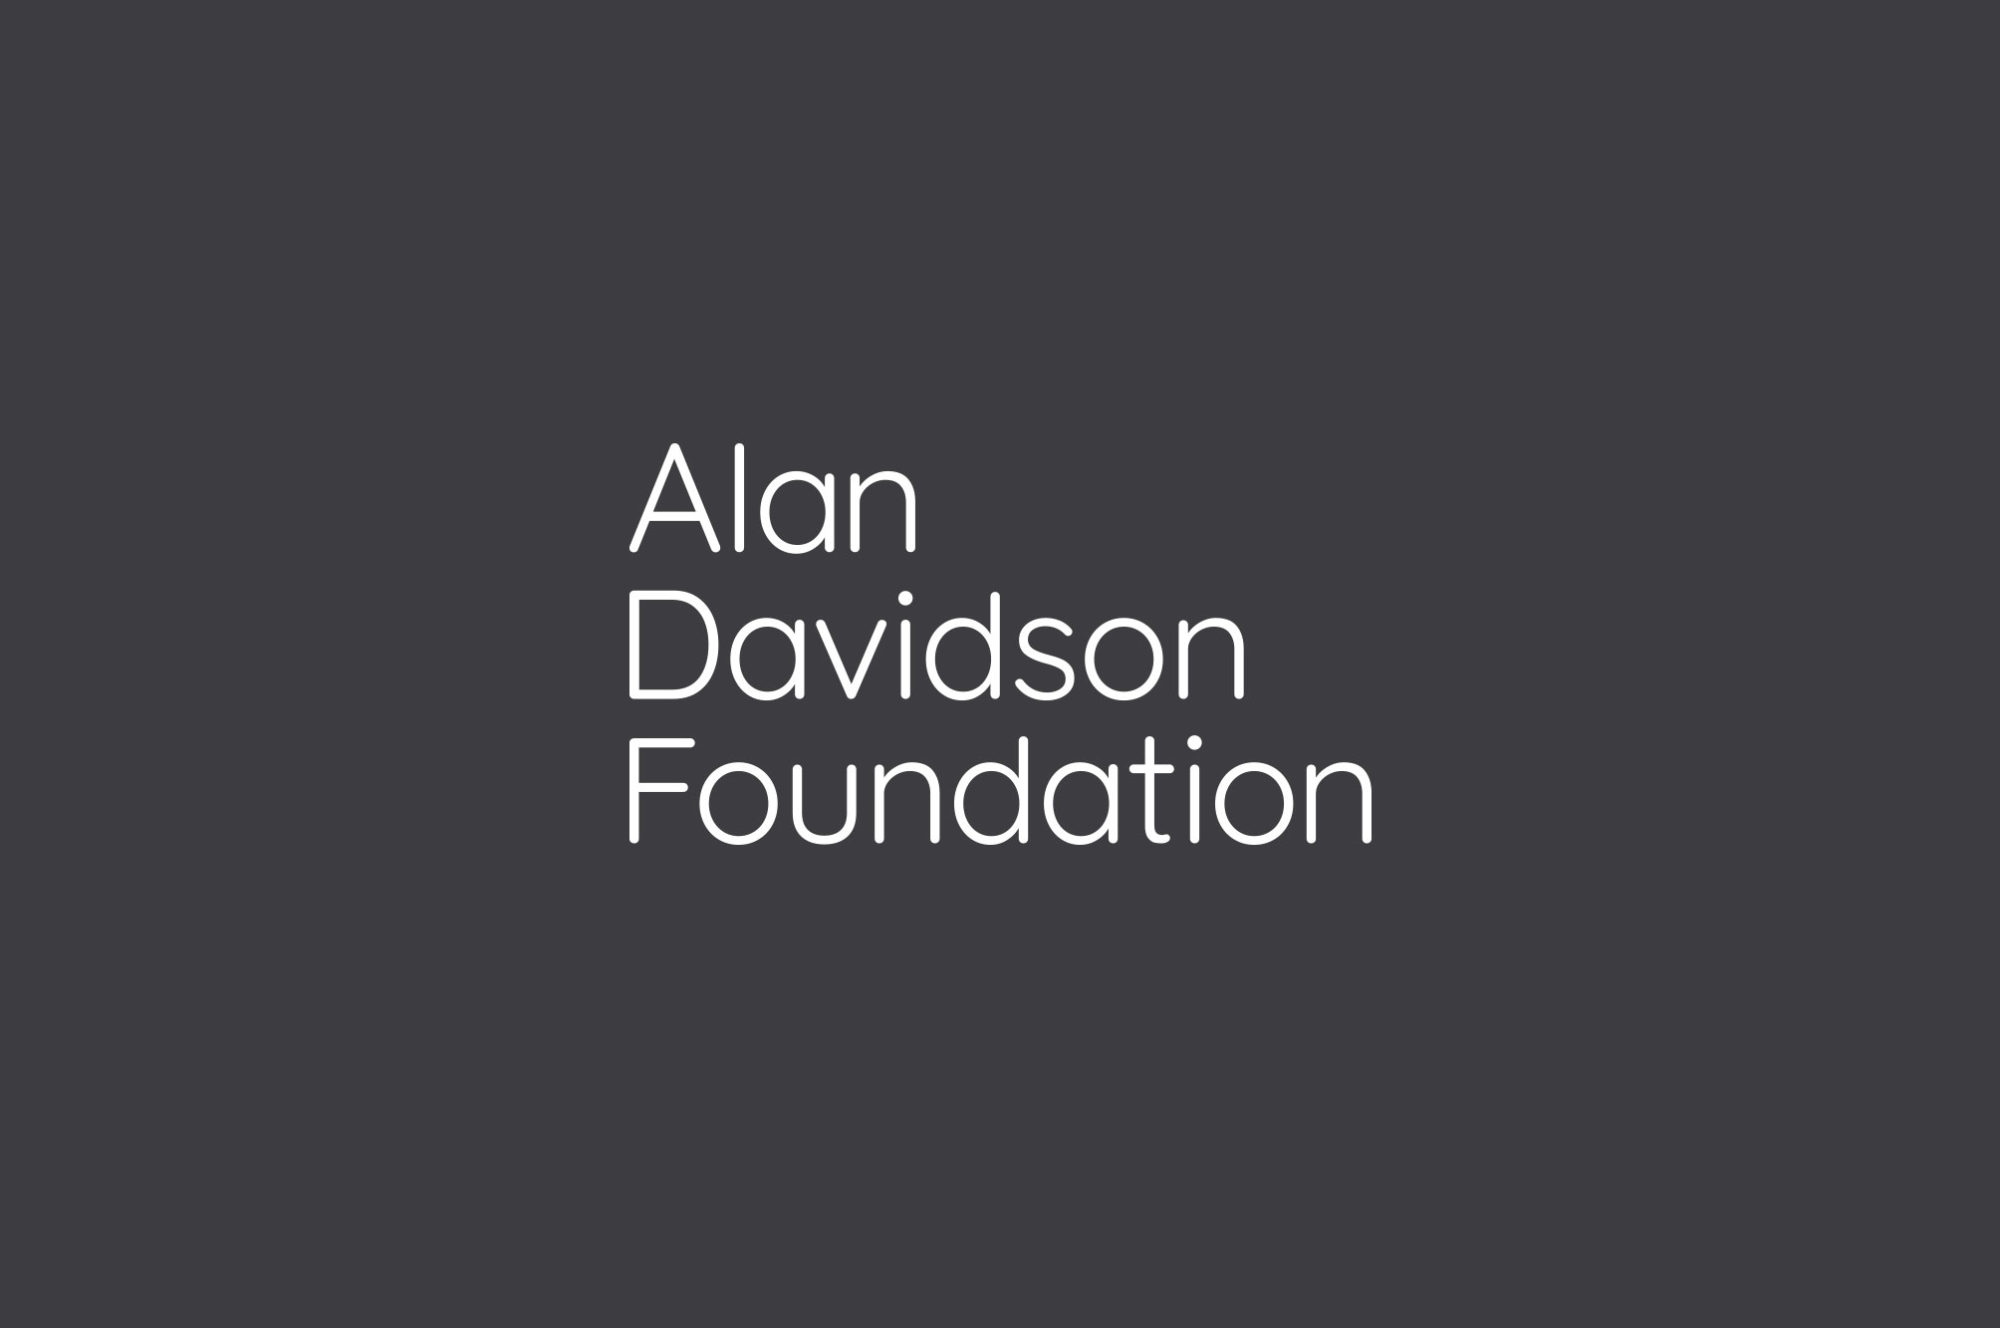 Alan-Davidson-Foundation-Wide-02